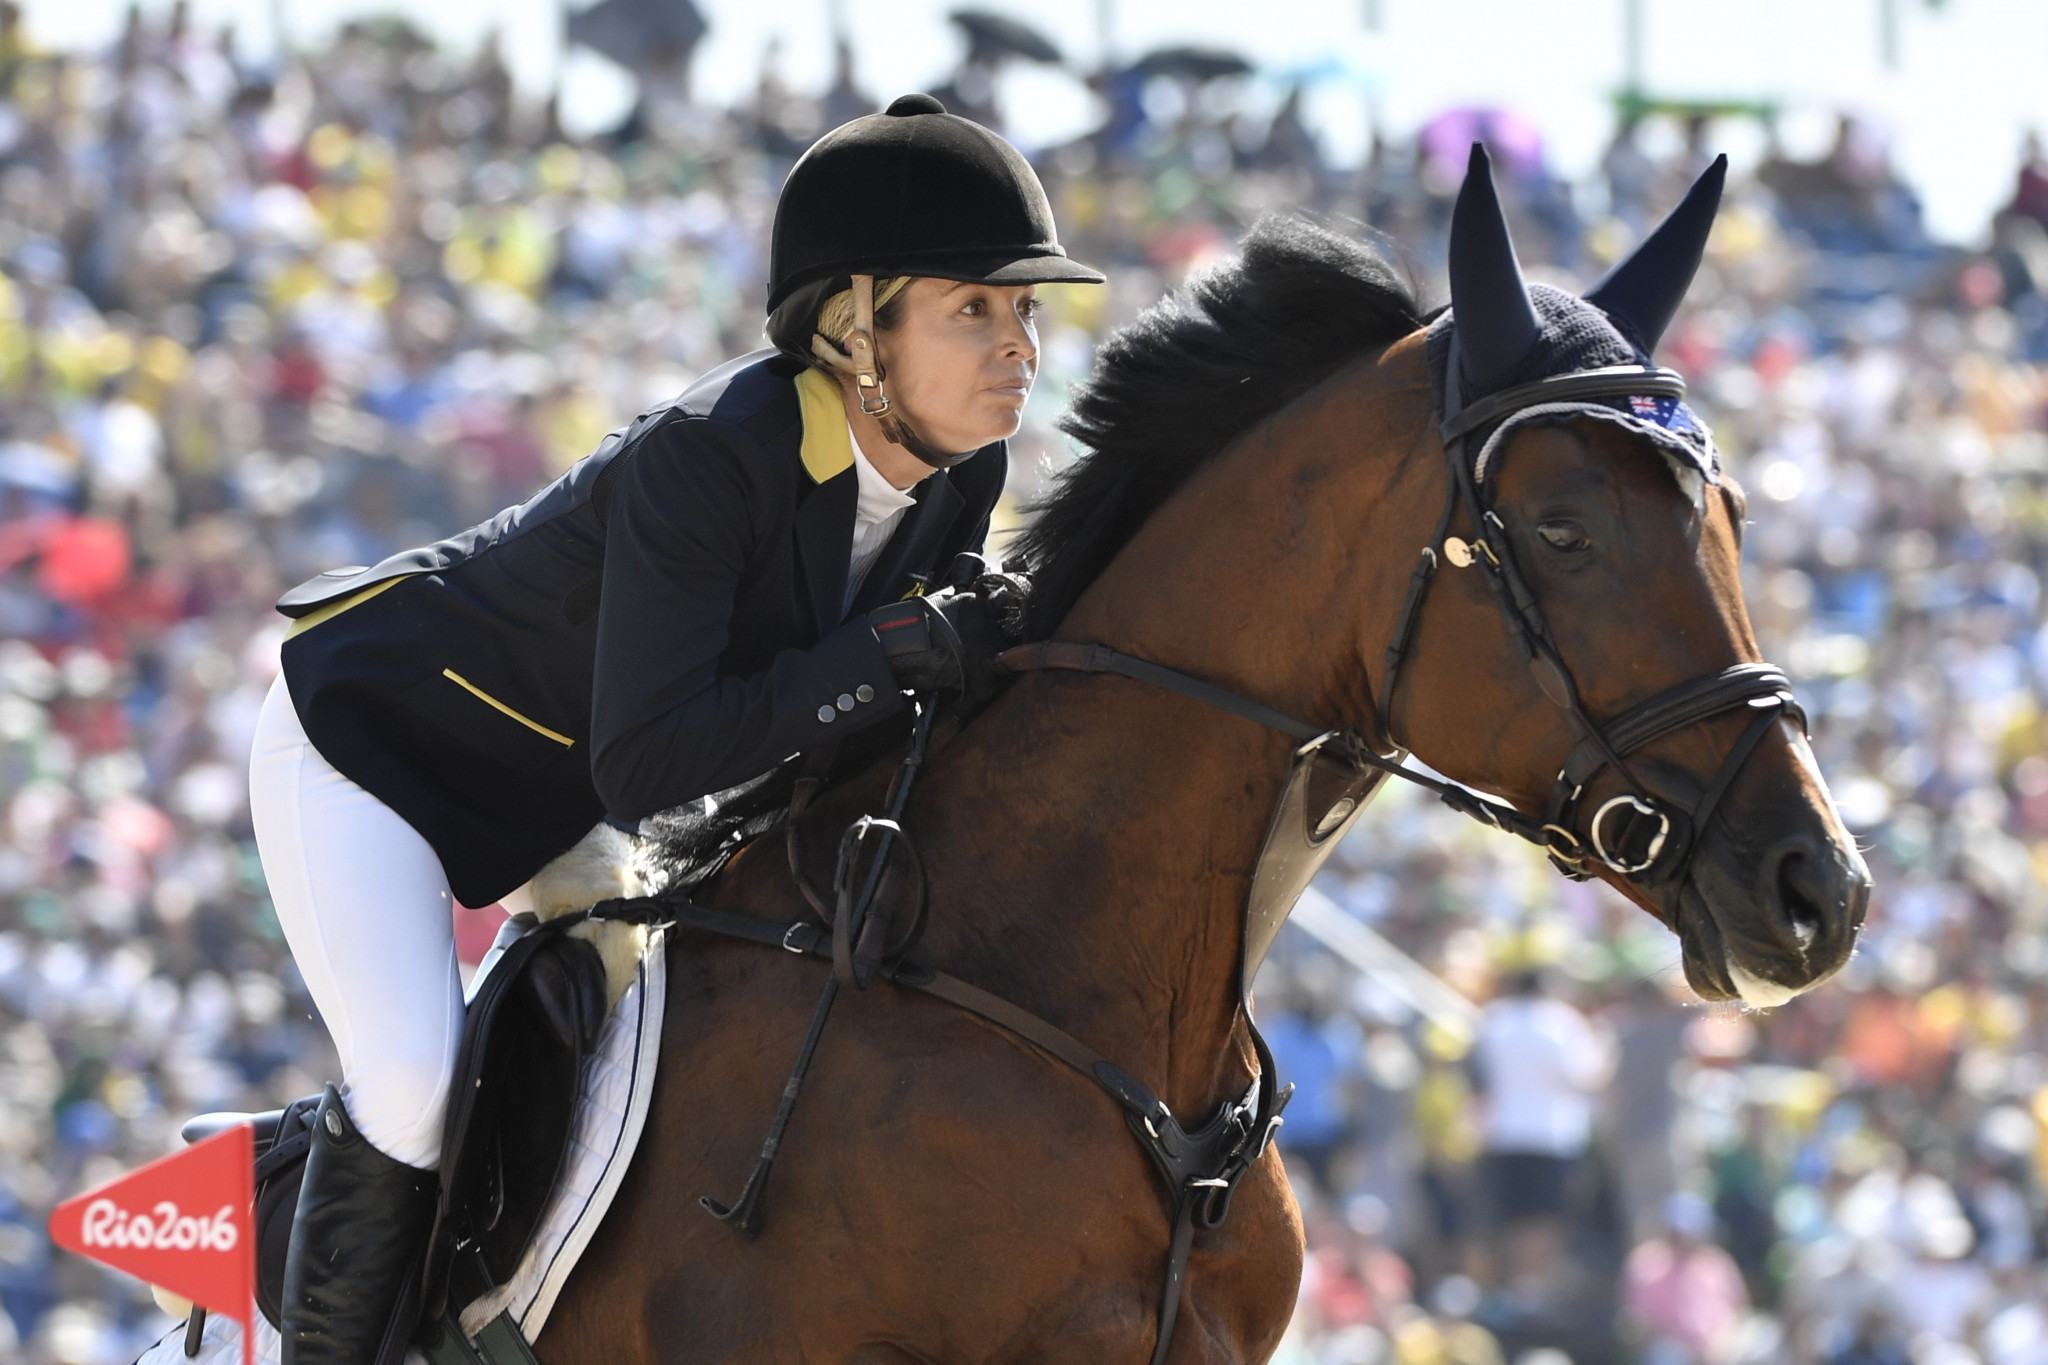 Edwina Tops-Alexander is the current overall leader ©Getty Images